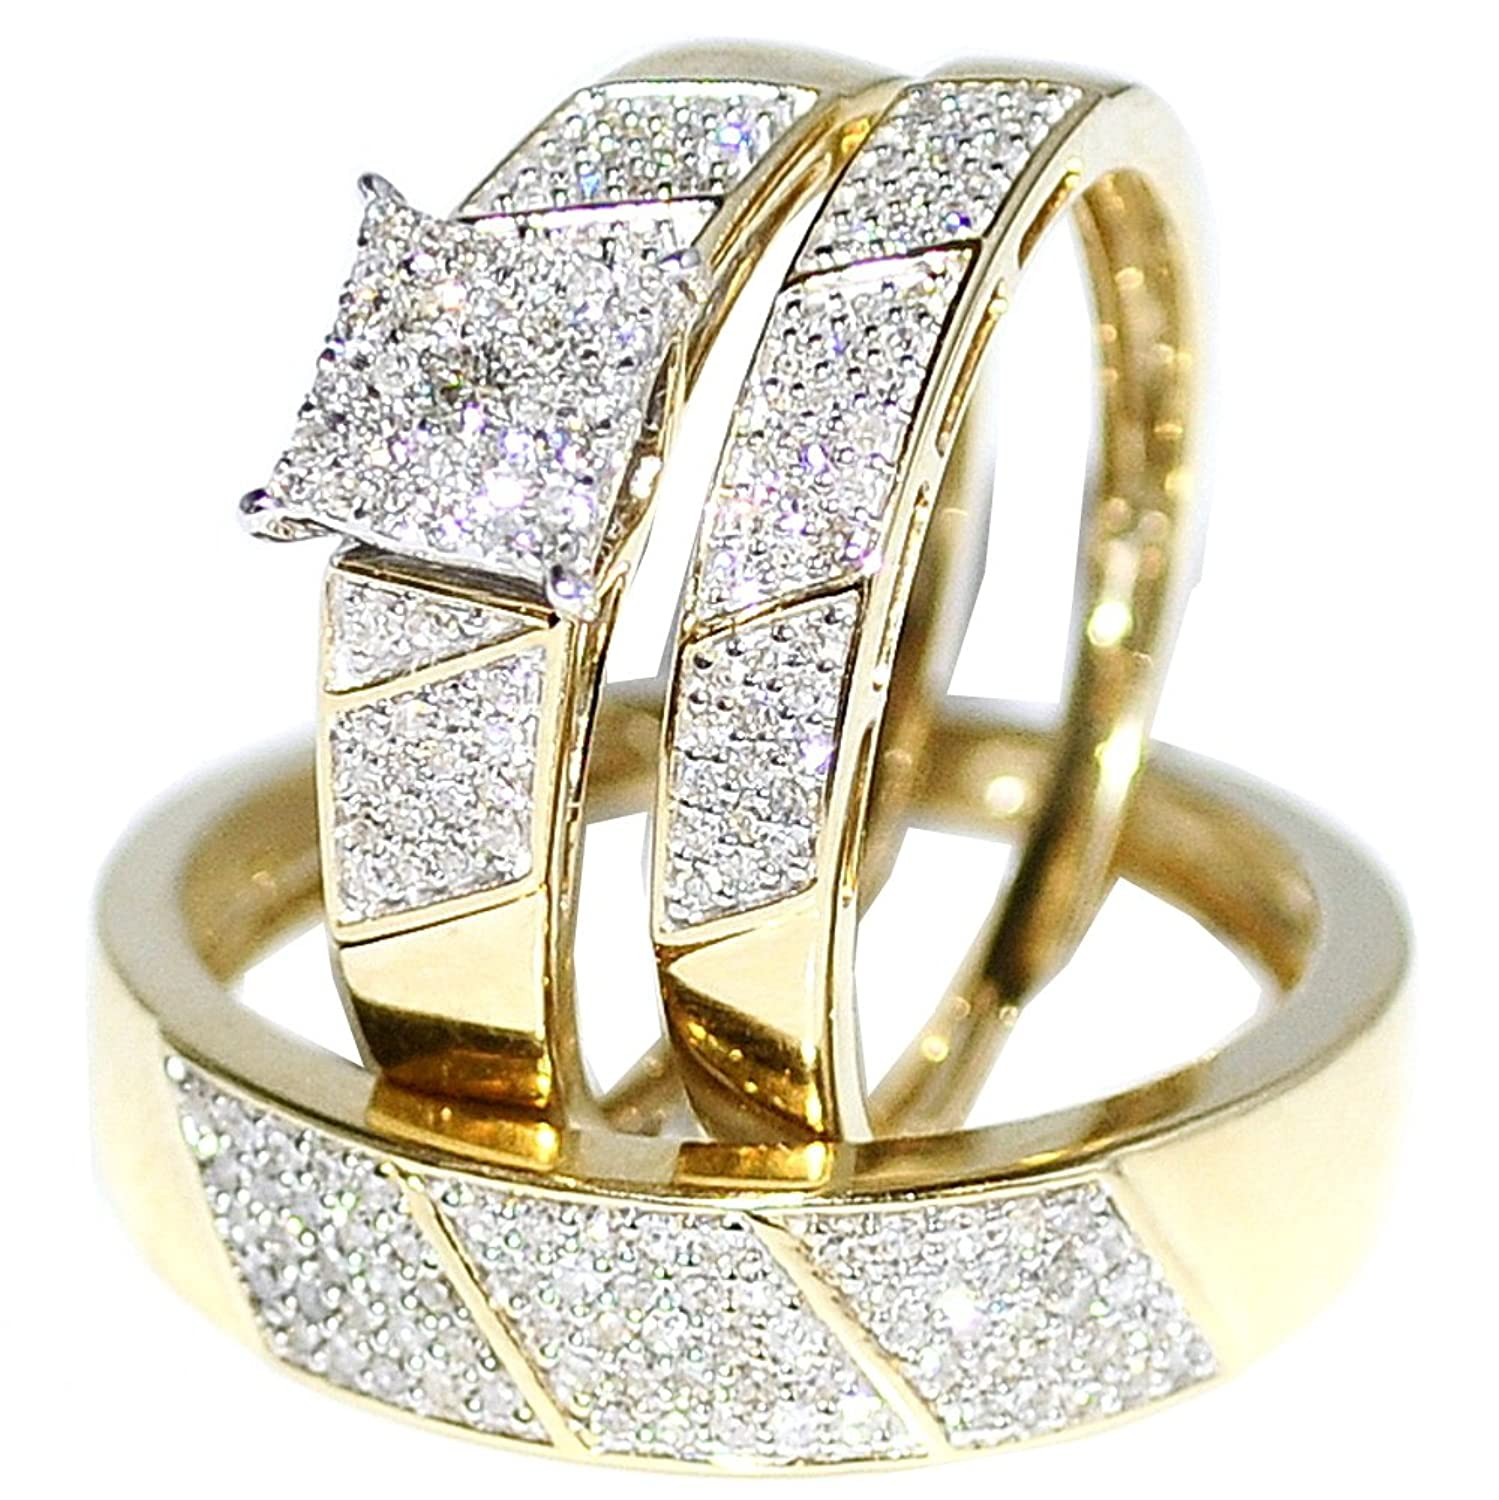 zirconia product category silver swarovski jewellery webstore rings made h number material with yellow plain l gold samuel ring plated